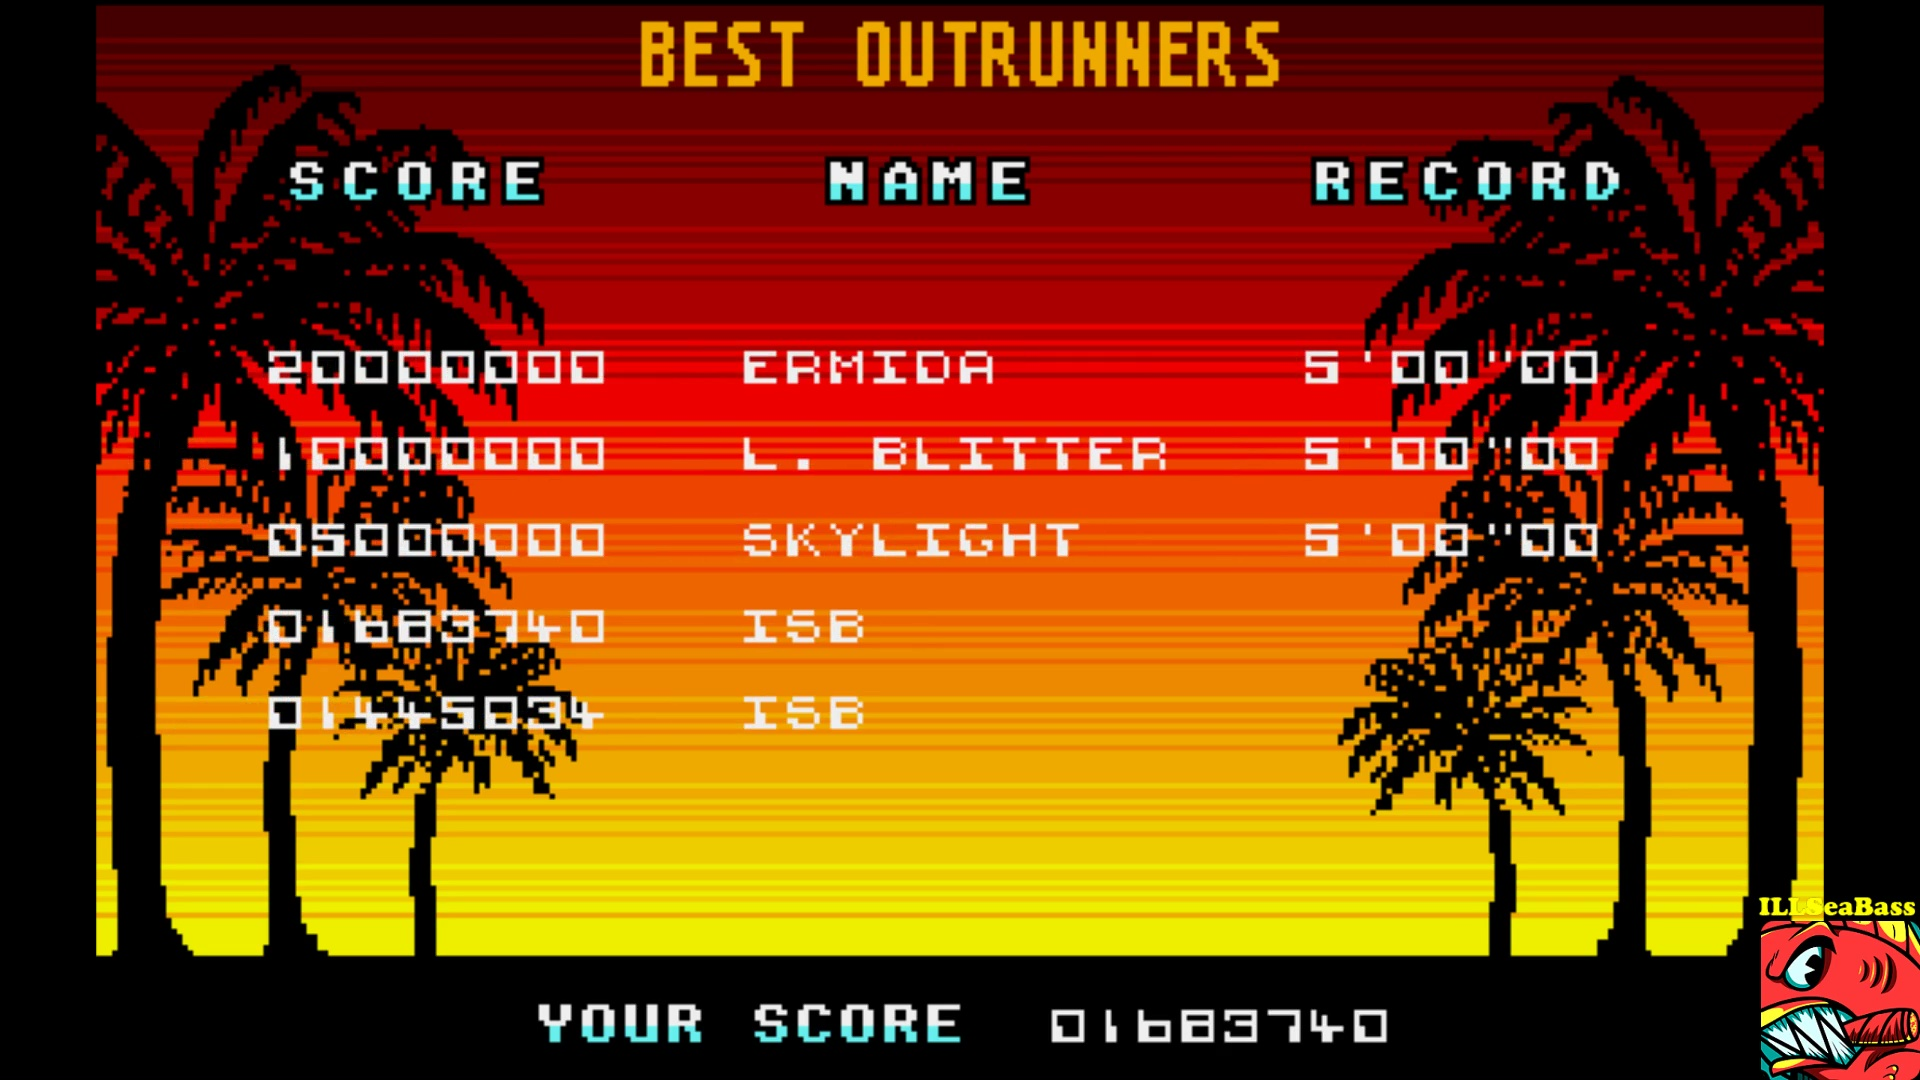 ILLSeaBass: Out Run [U.S. Gold] (Amiga Emulated) 1,683,740 points on 2017-10-28 22:28:51